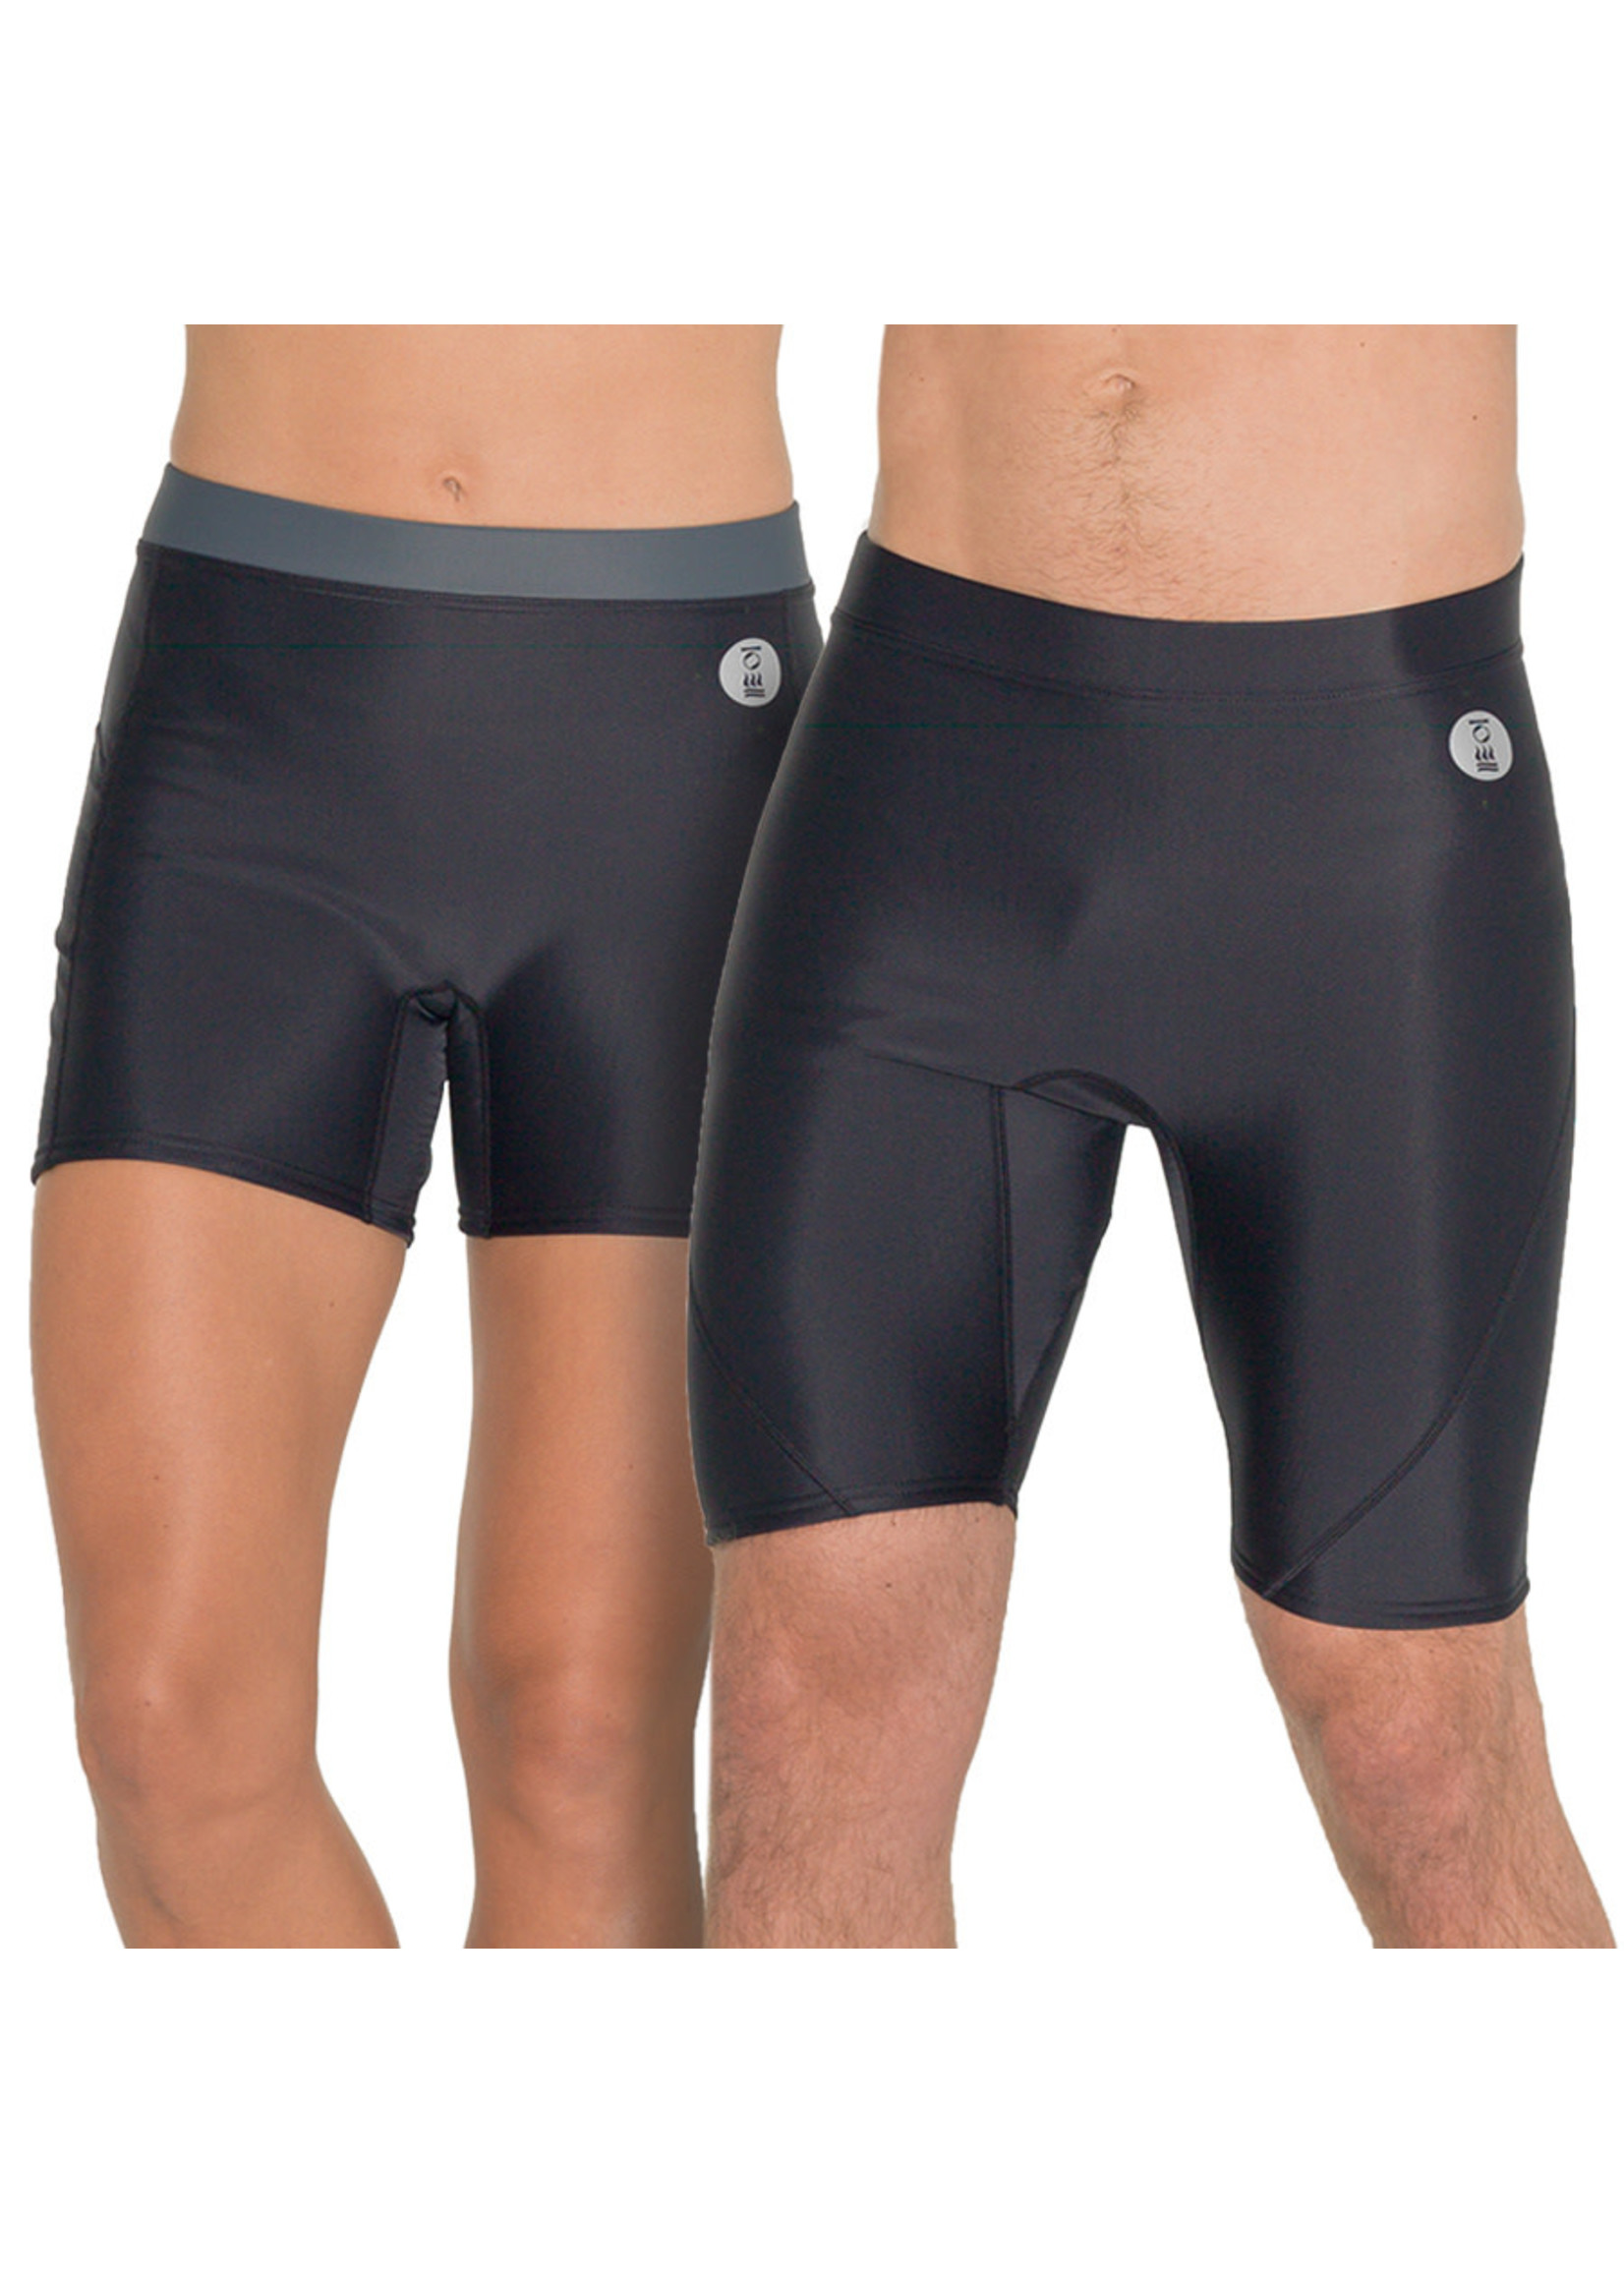 Fourth Element Thermocline Shorts - vrouw